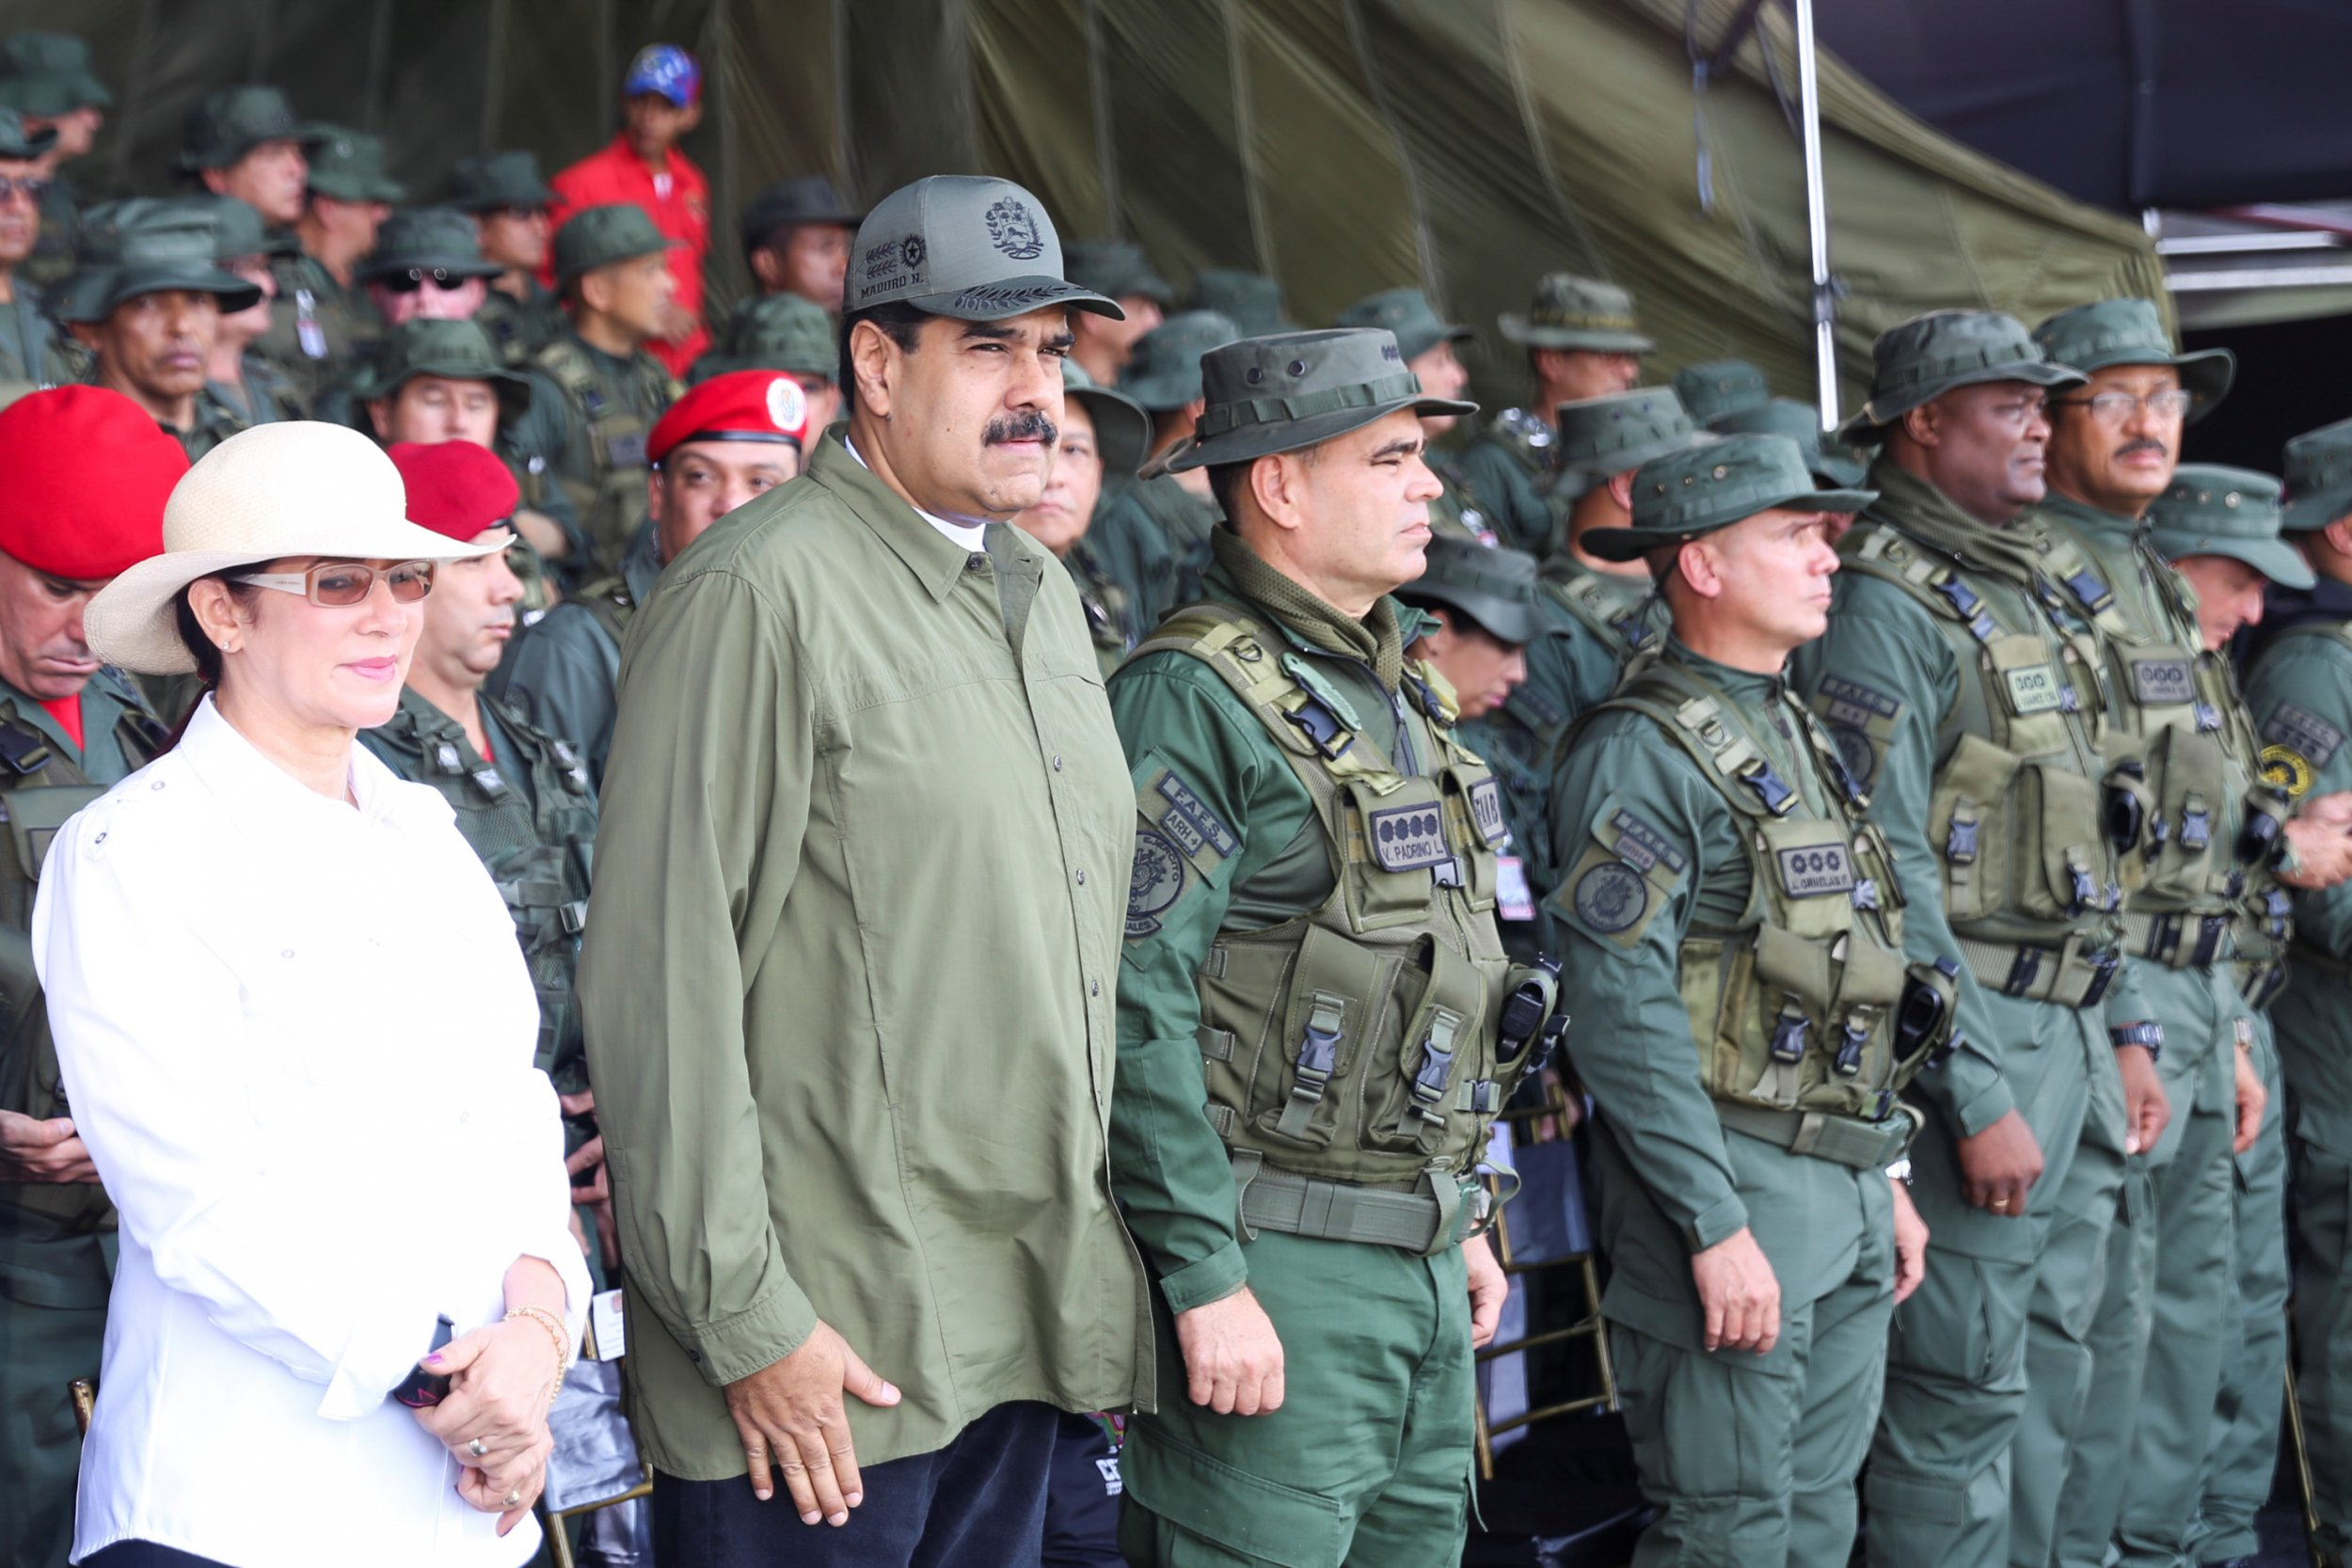 Venezuela prepares for war with U.S. with 'rifles, missiles and well-oiled tanks at the ready'